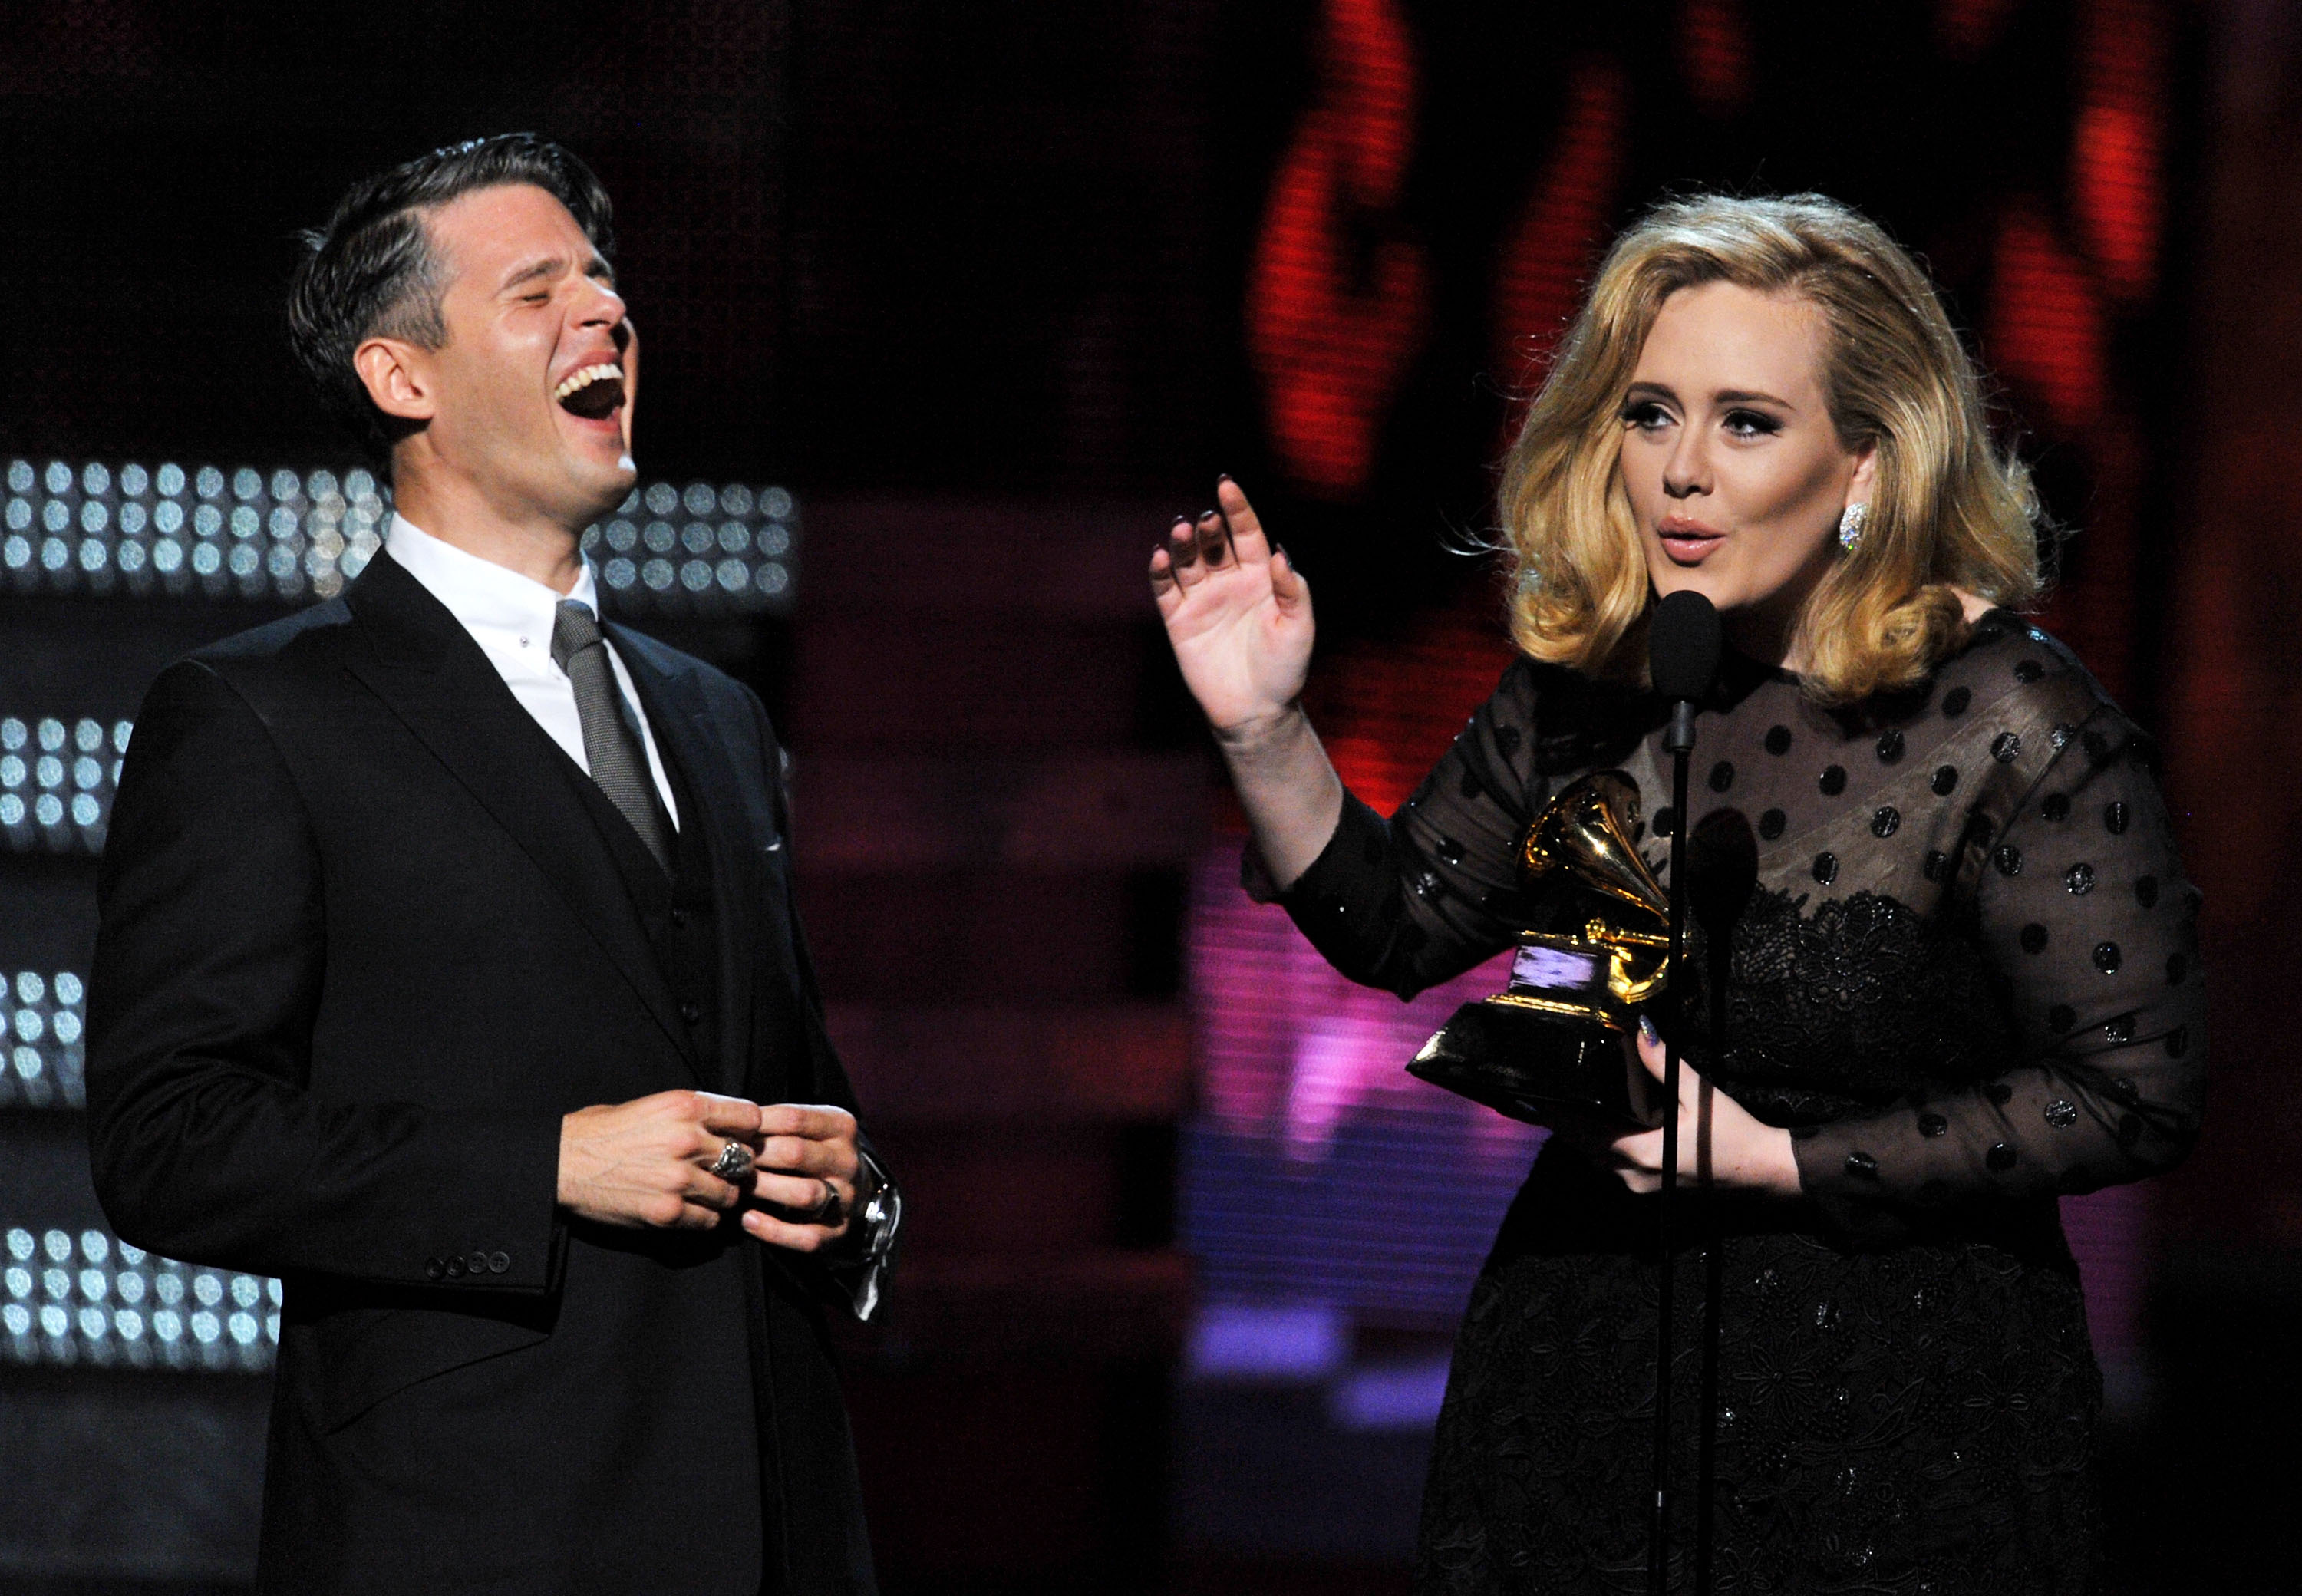 Adele cracked a joke while accepting one of her statues.